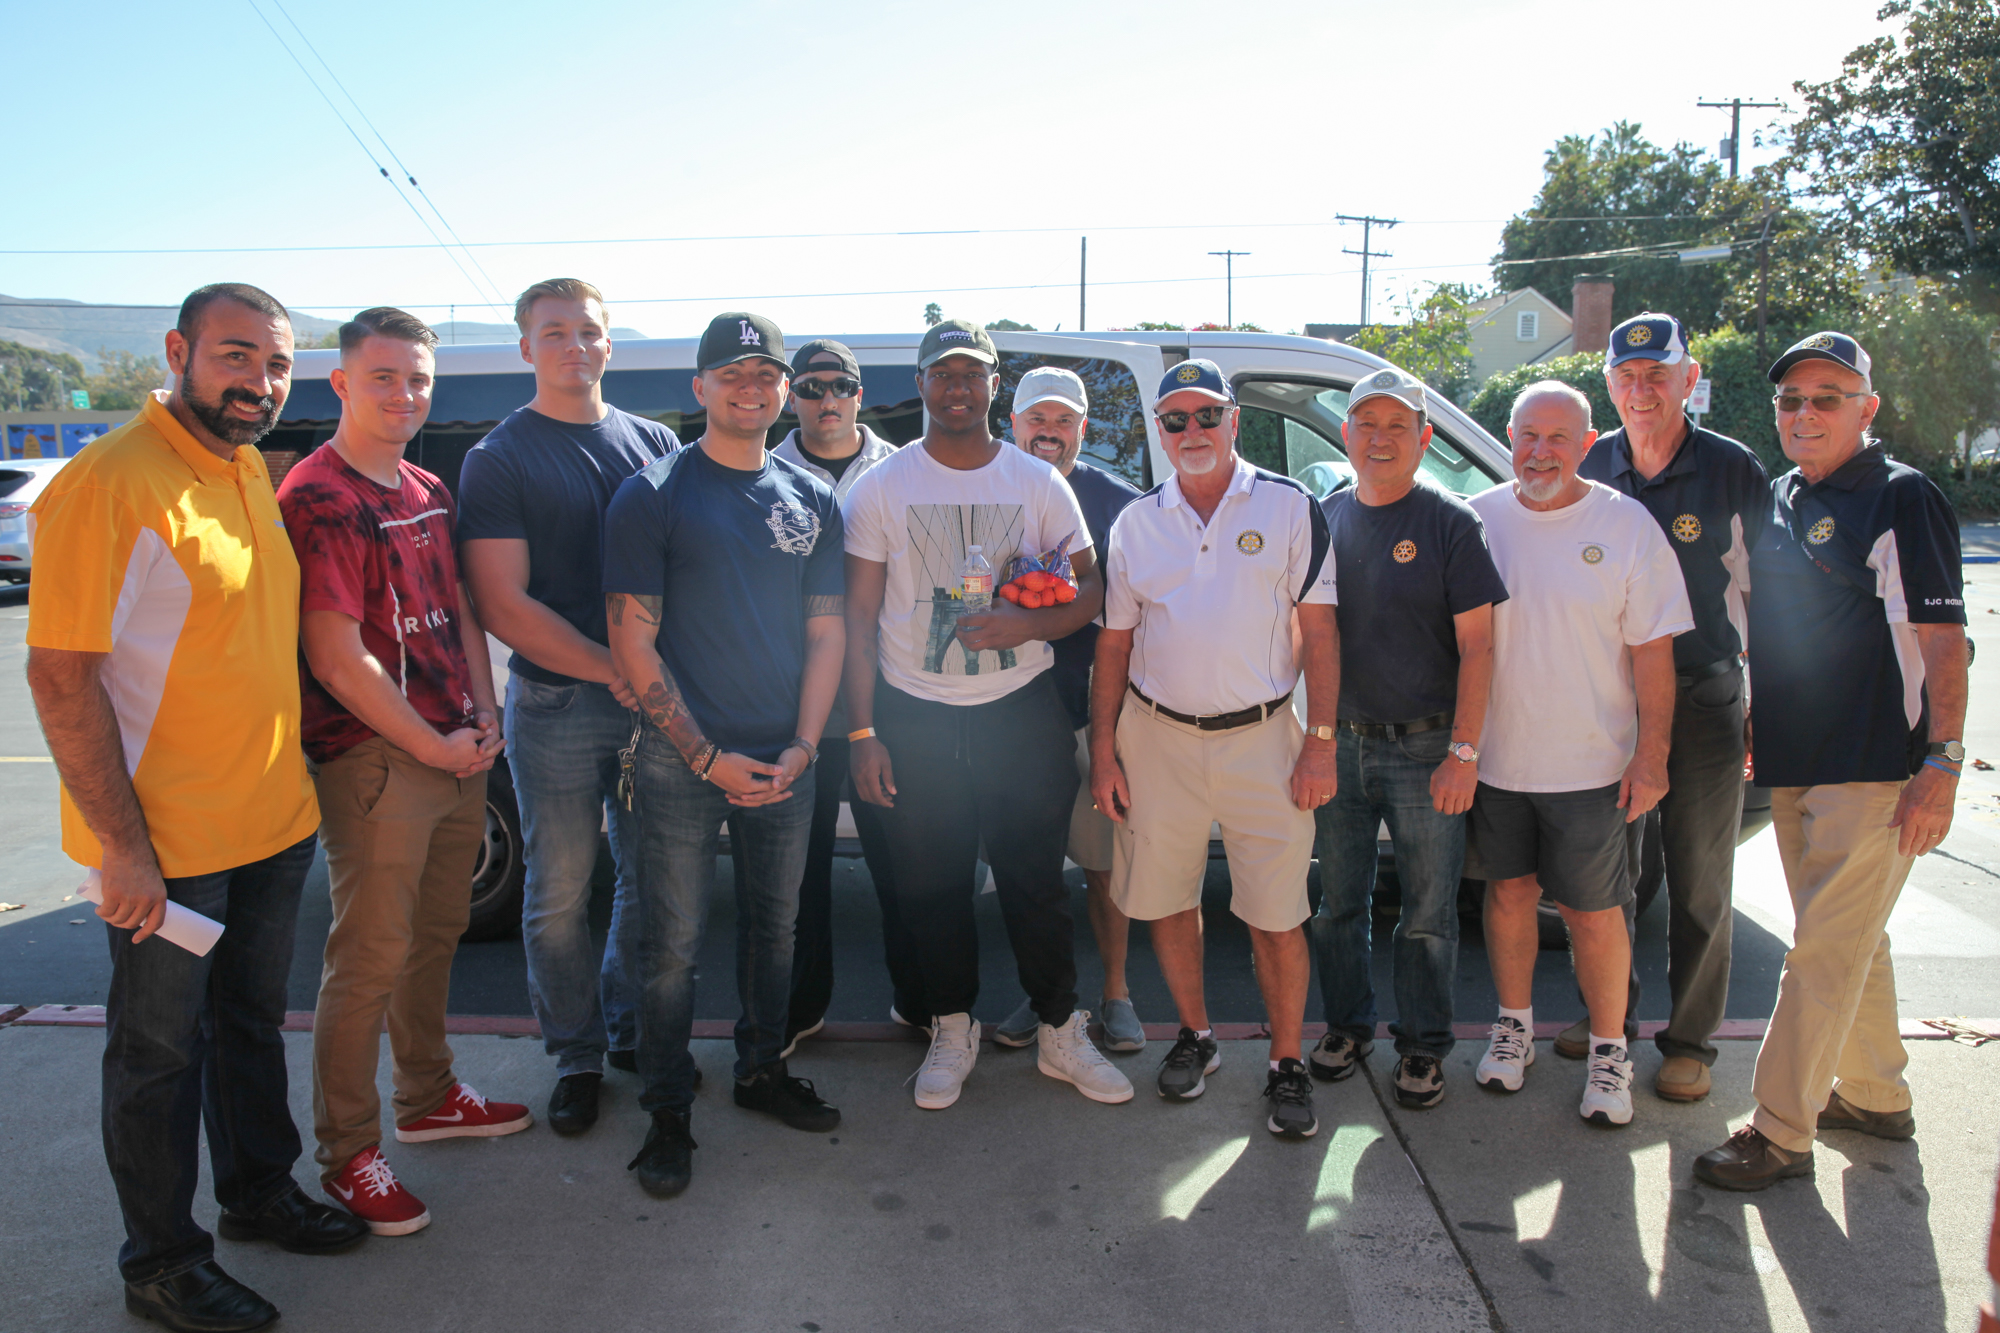 The SJC Rotary Club poses for a quick photo with Marines from Camp Pendleton who came to pick up meal donations for young families on the base. Photo: Allison Jarrell